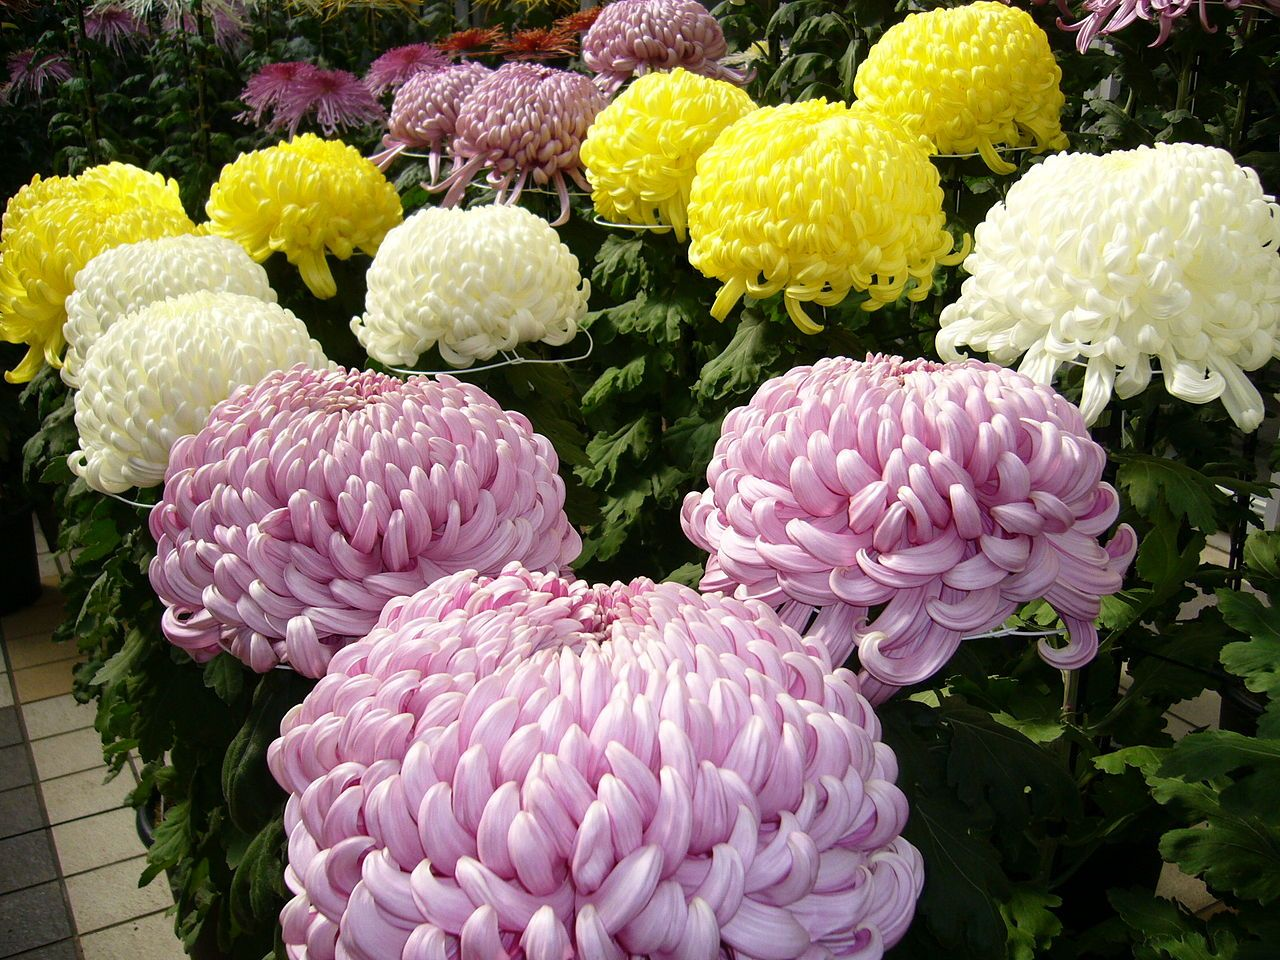 The Chrysanthemum Is Also The National Flower Of Japan Chrysanthemum Plant Flowers Chrysanthemum Morifolium